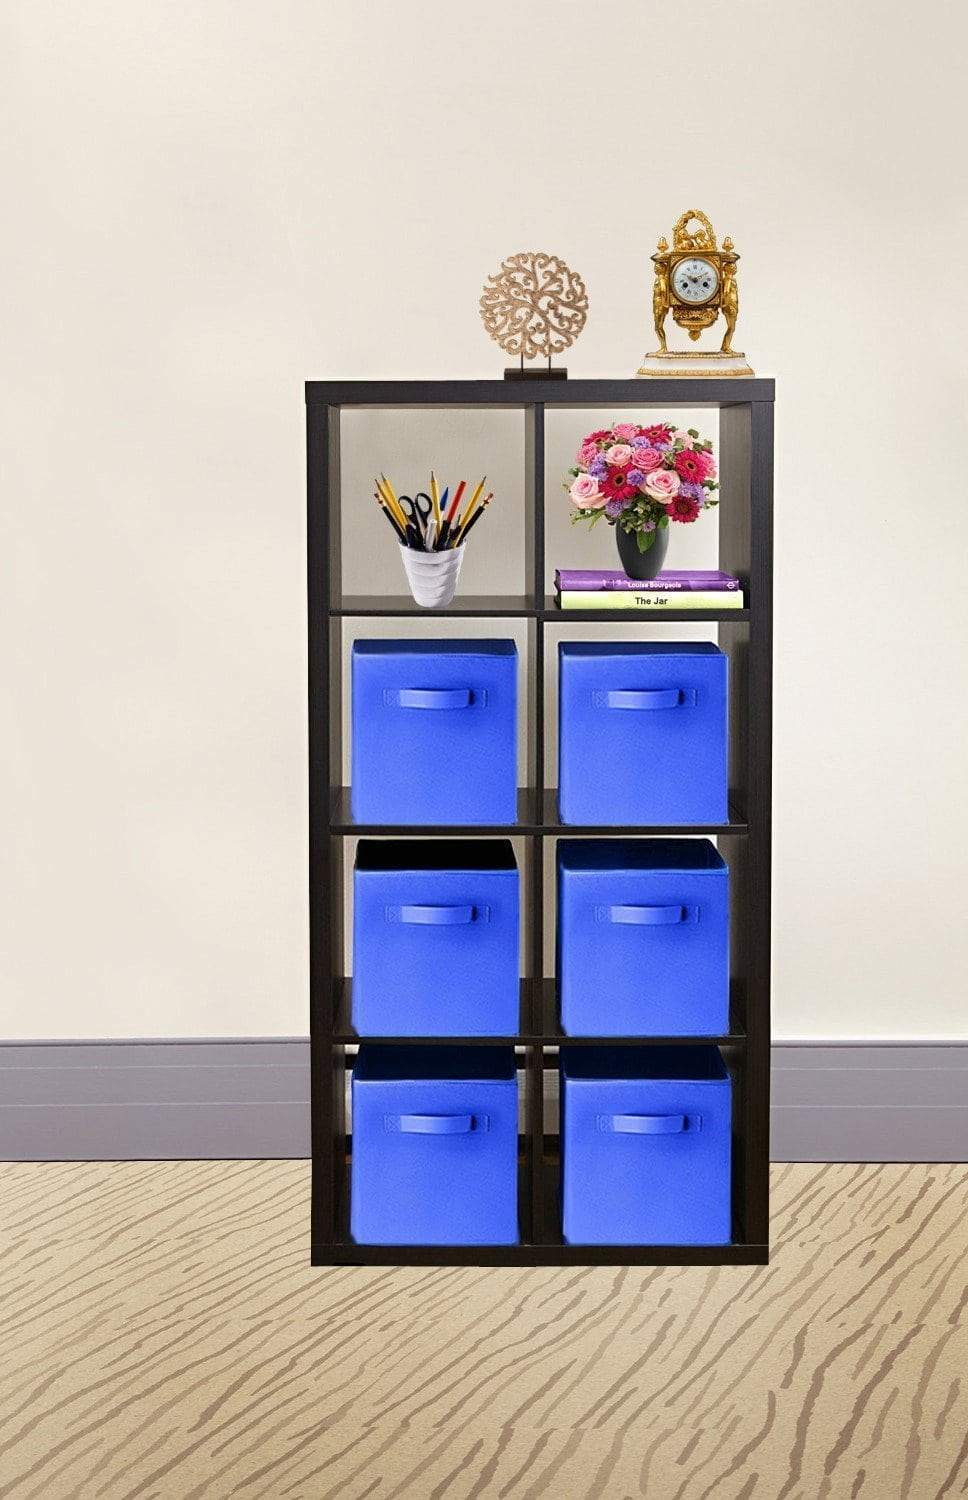 Top 30 pack blue storage cubes with two handles shelves baskets bins containers home decorative closet organizer household fabric cloth collapsible box toys storages drawer blue 30 pack